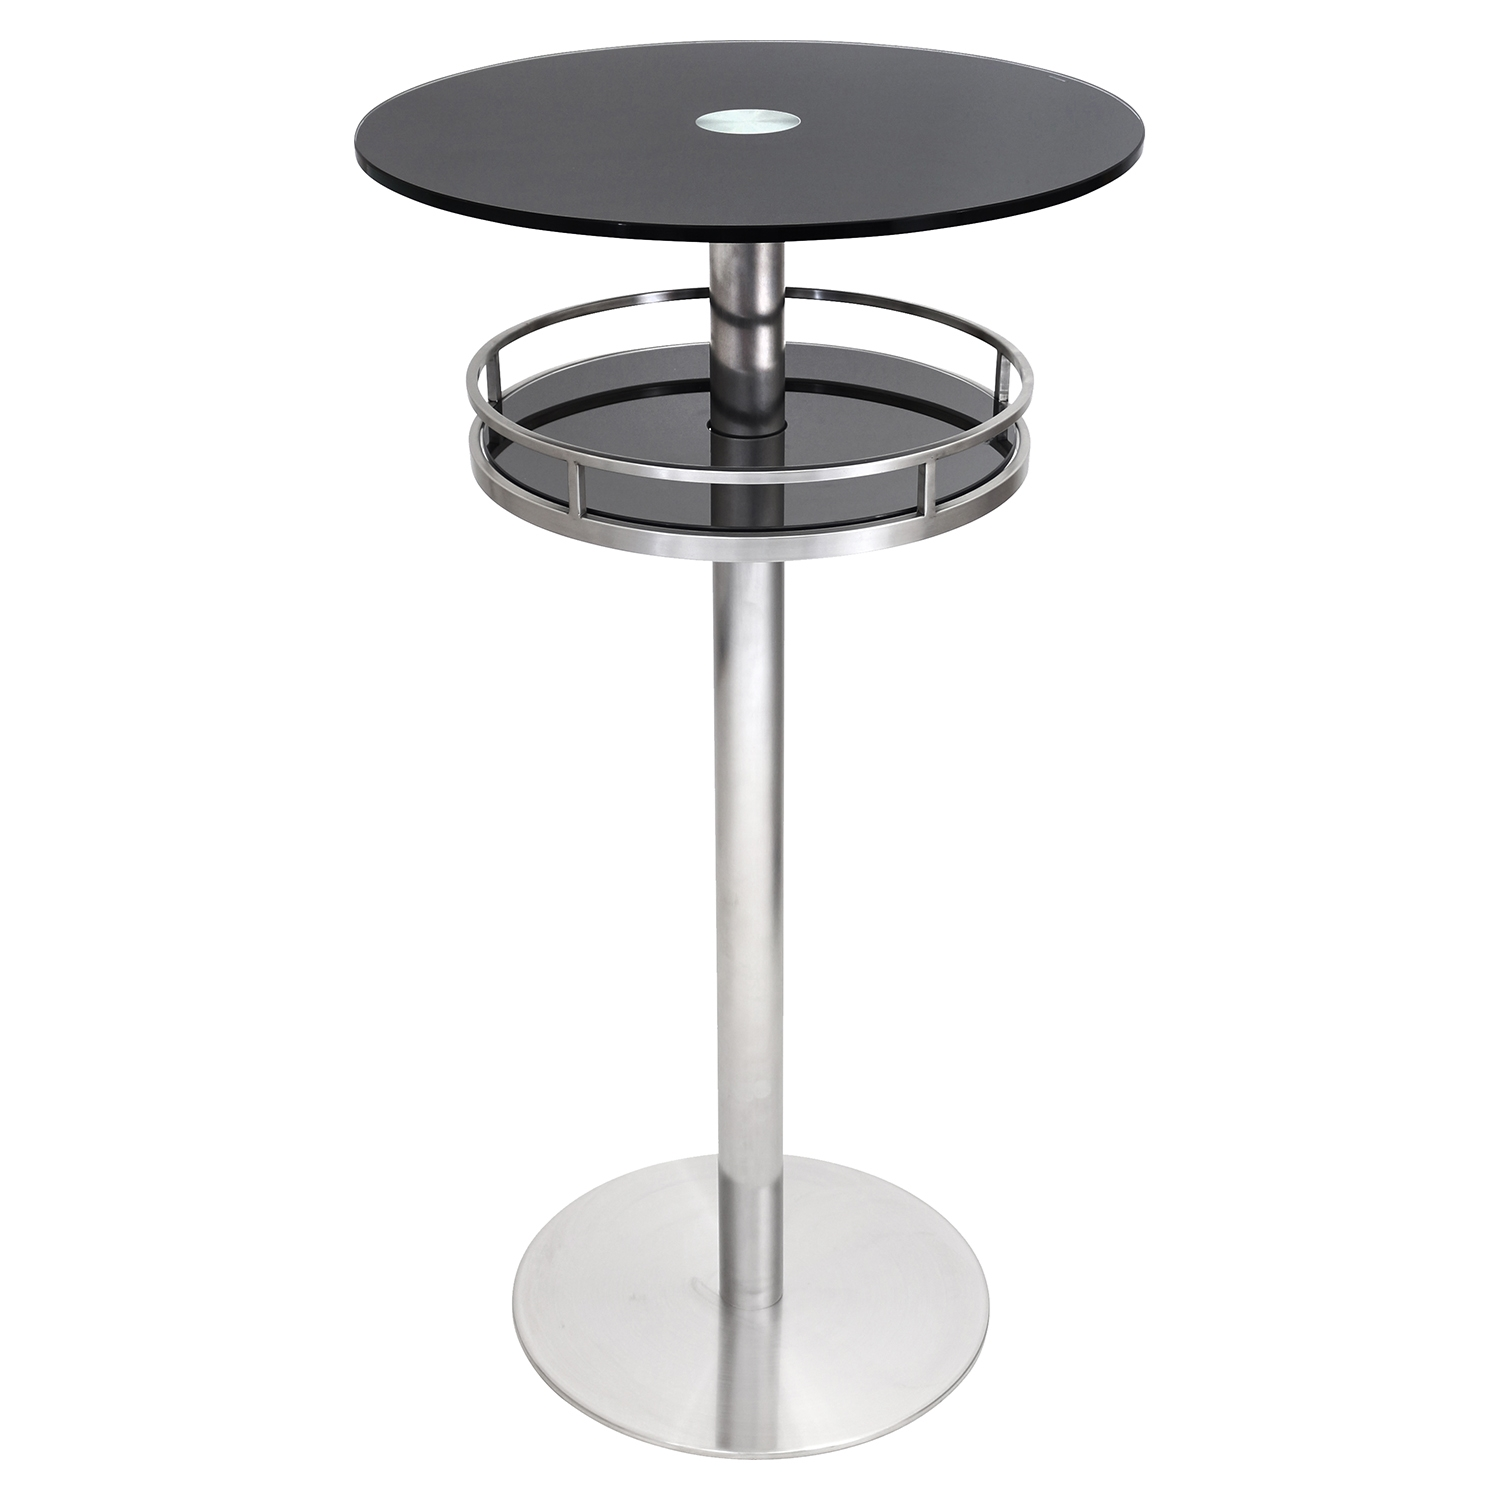 Cora Bar Table - Black